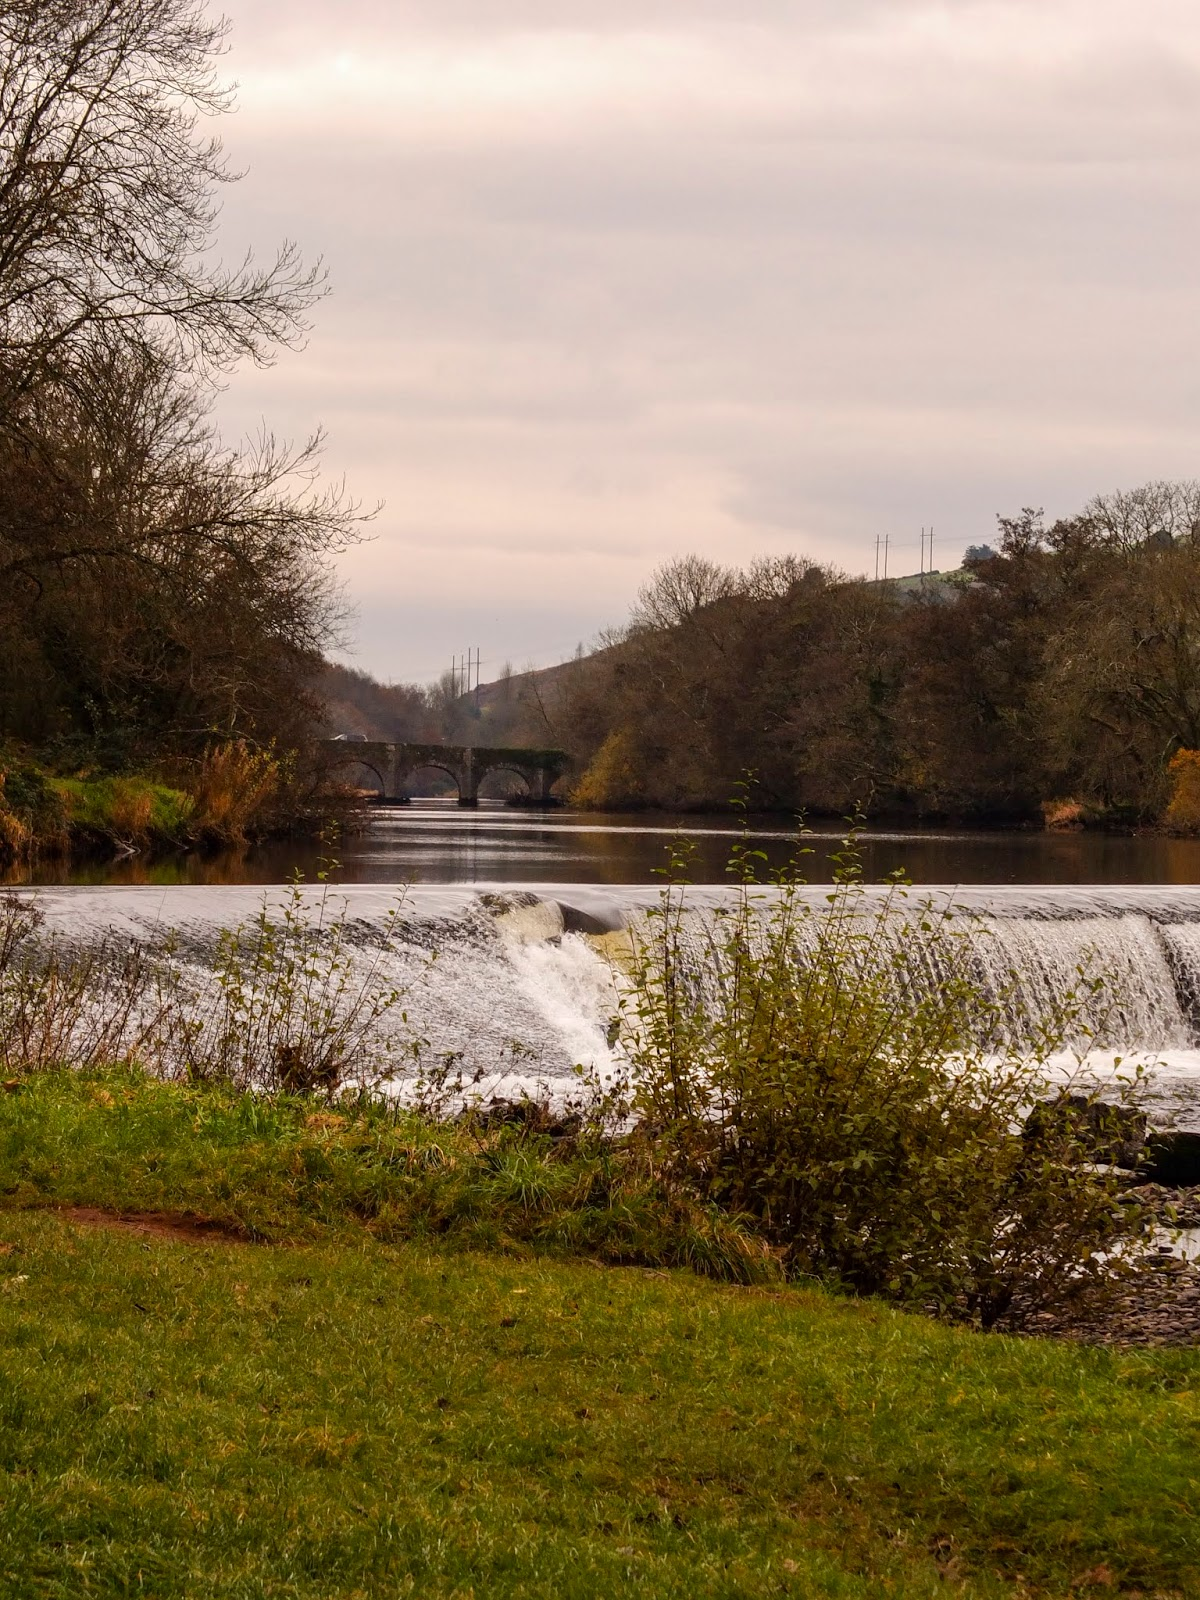 River Lee as seen from the Ballincollig Regional Park, County Cork.